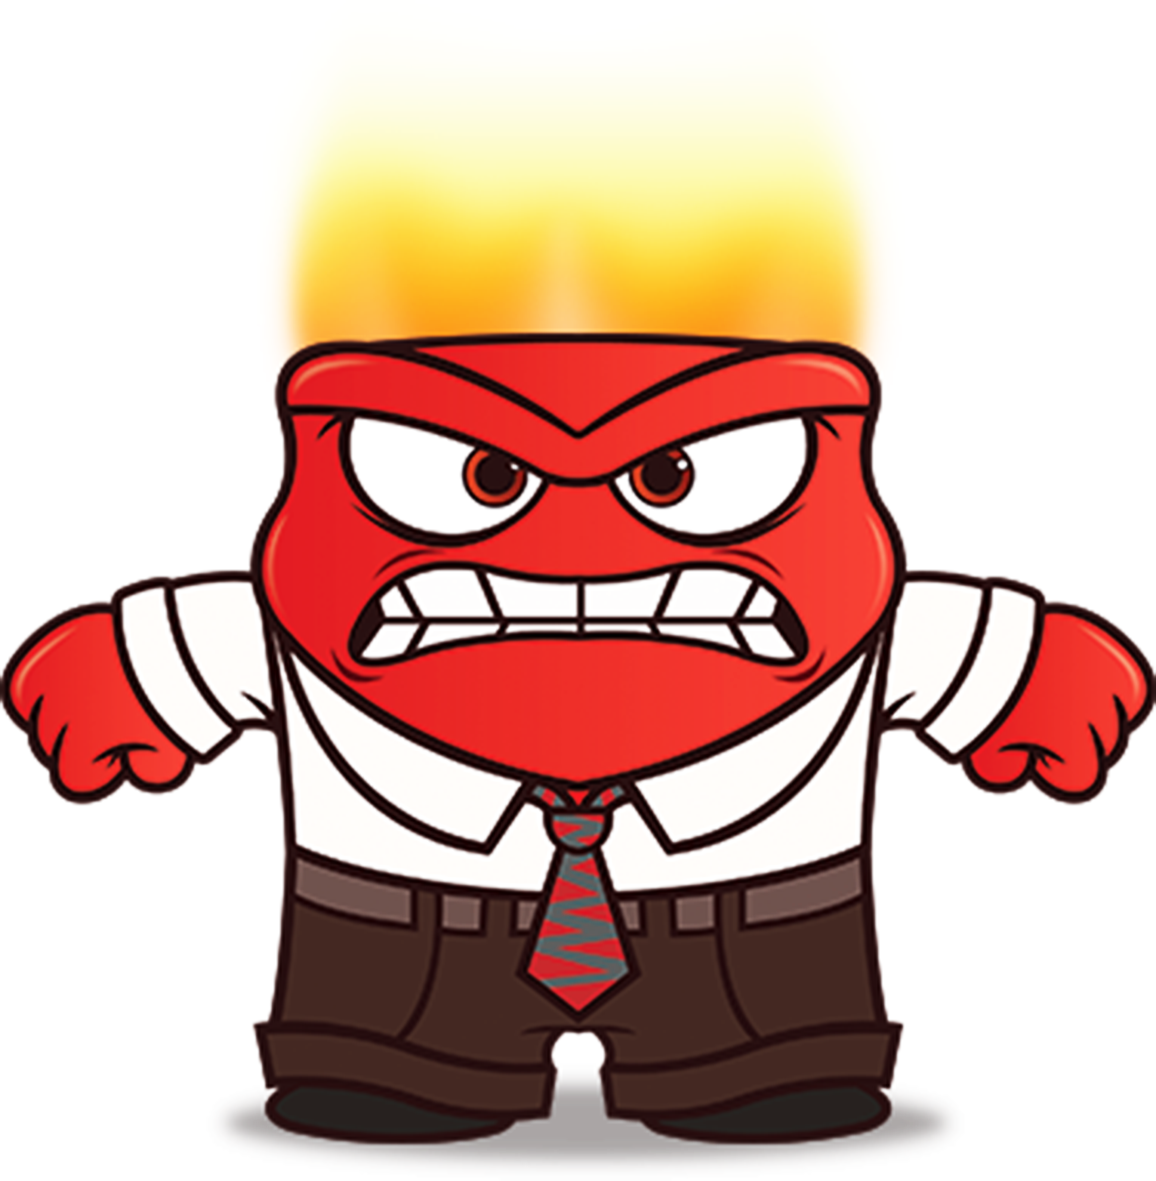 3005 Inside Out Anger Clip Art Height 8 cm decal